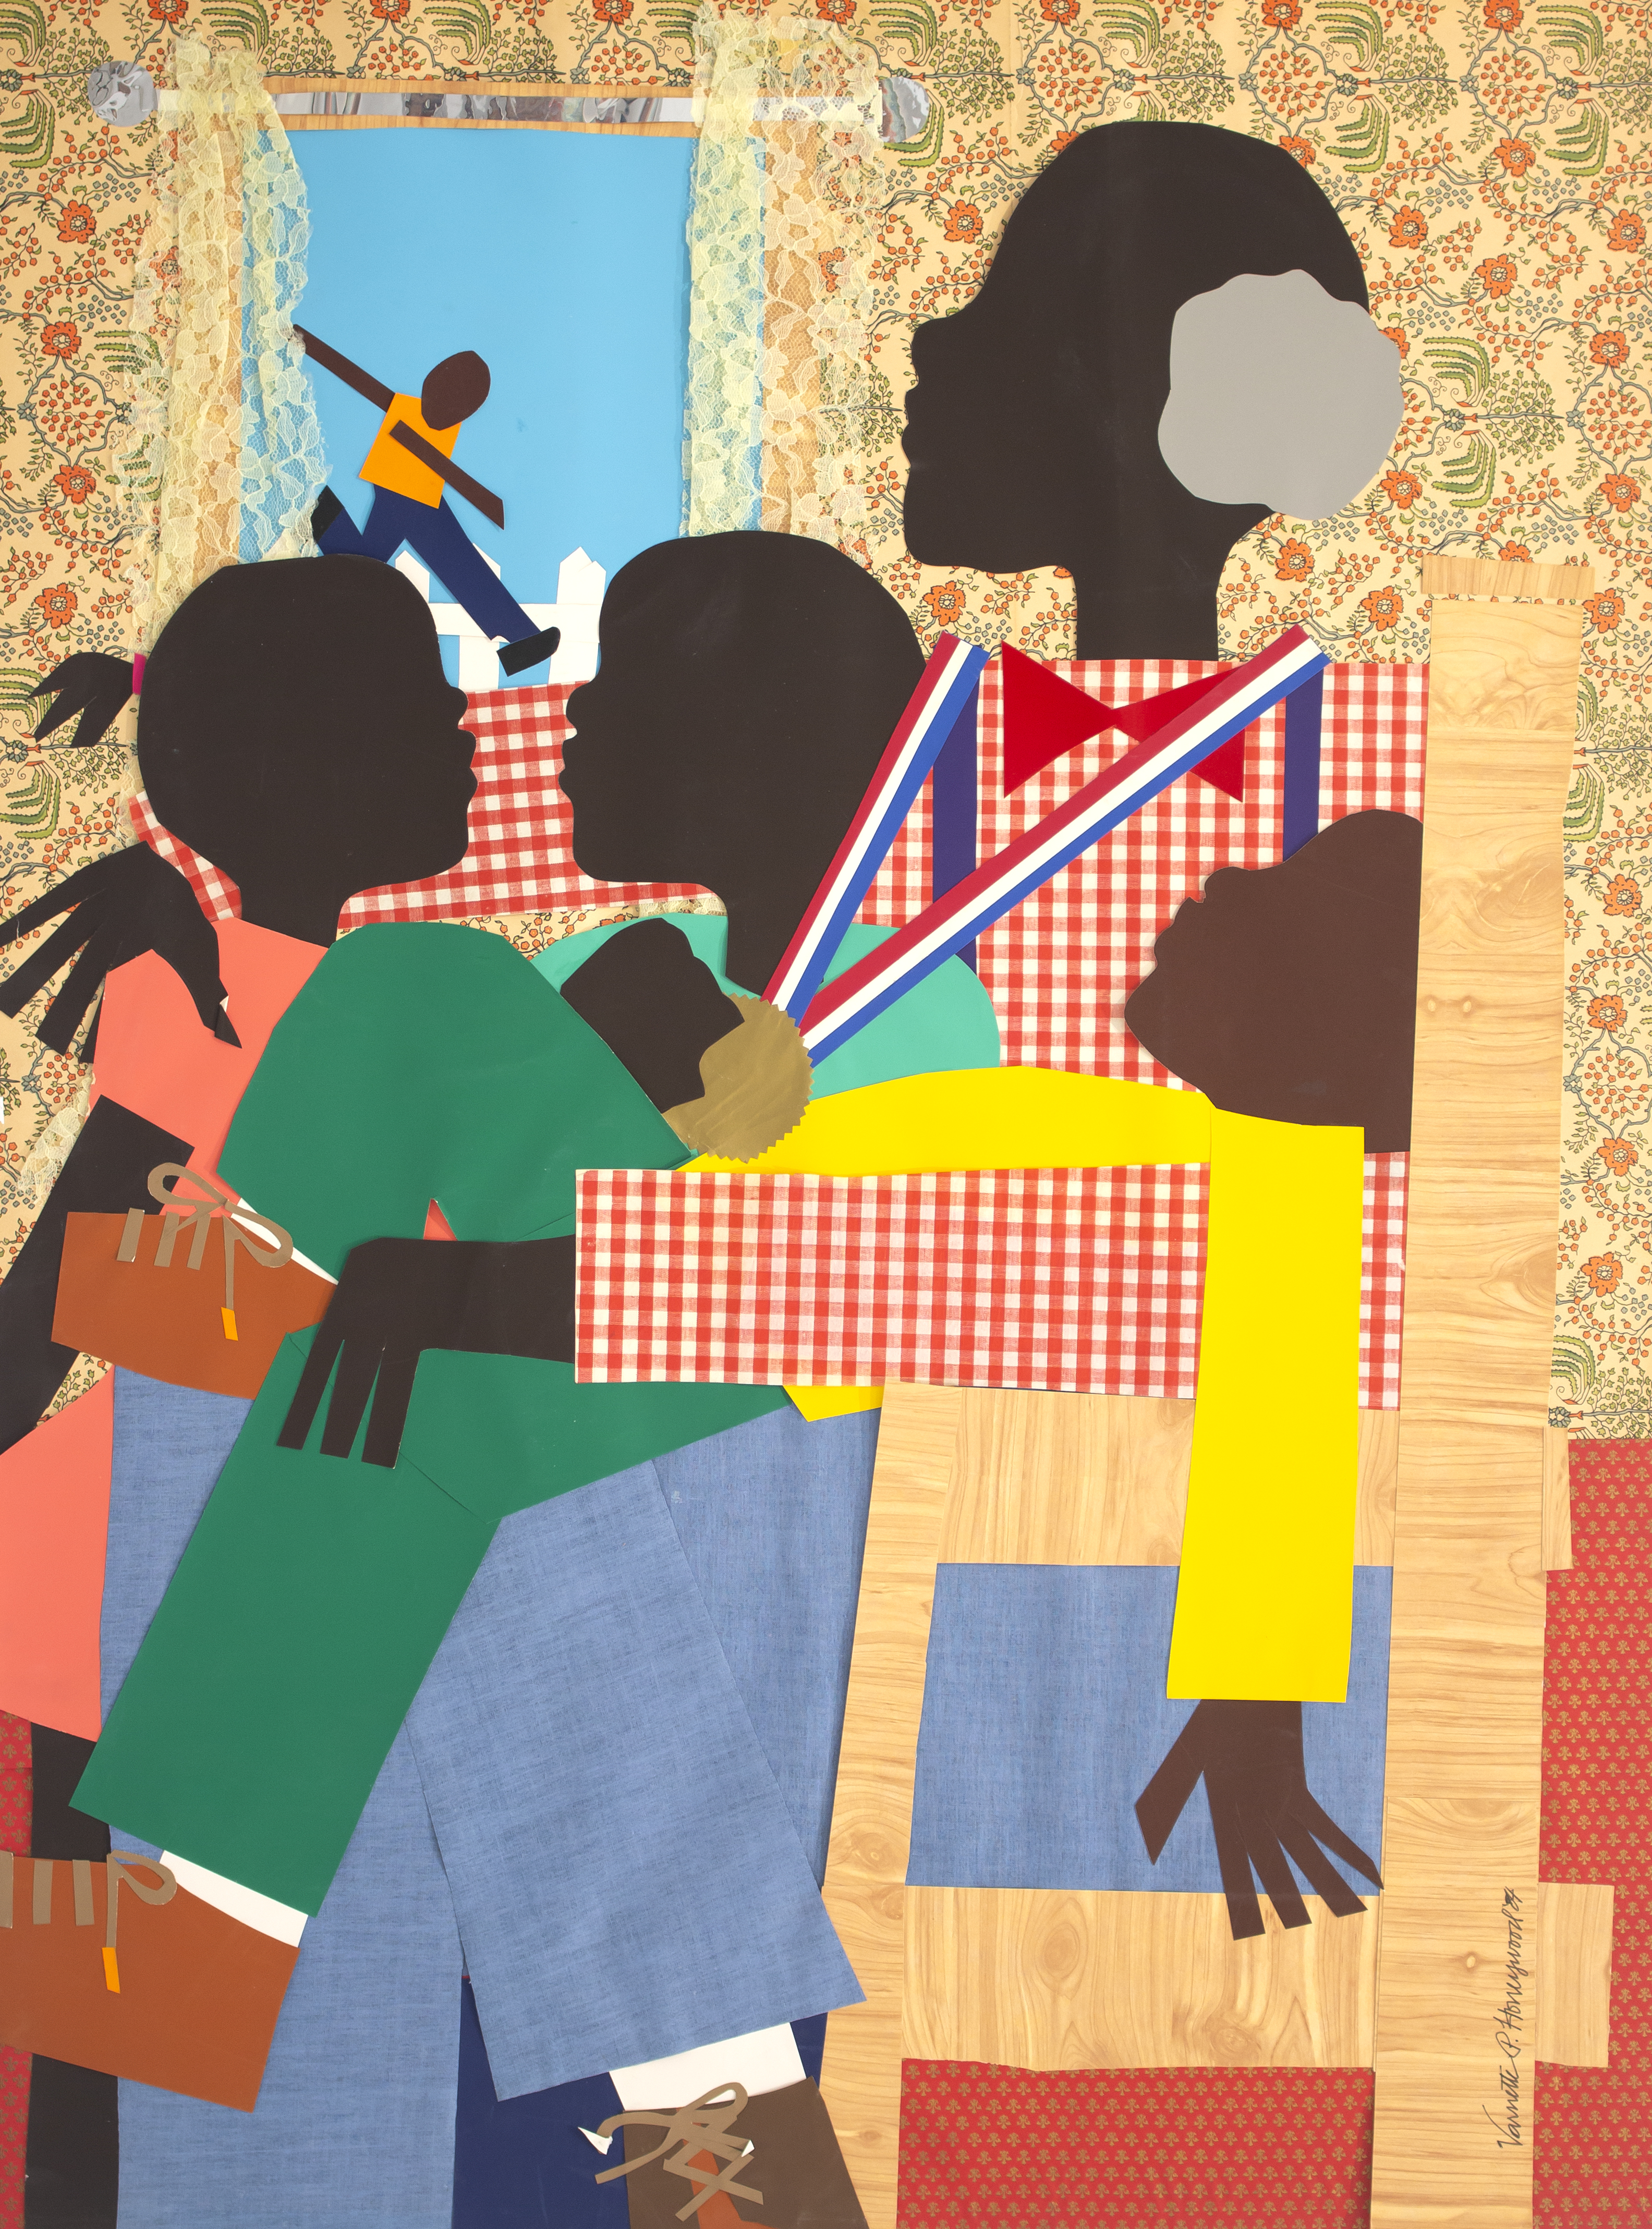 Varnette Patricia Honeywood, Family Time, 1984, 30 x 30 in, collage on board